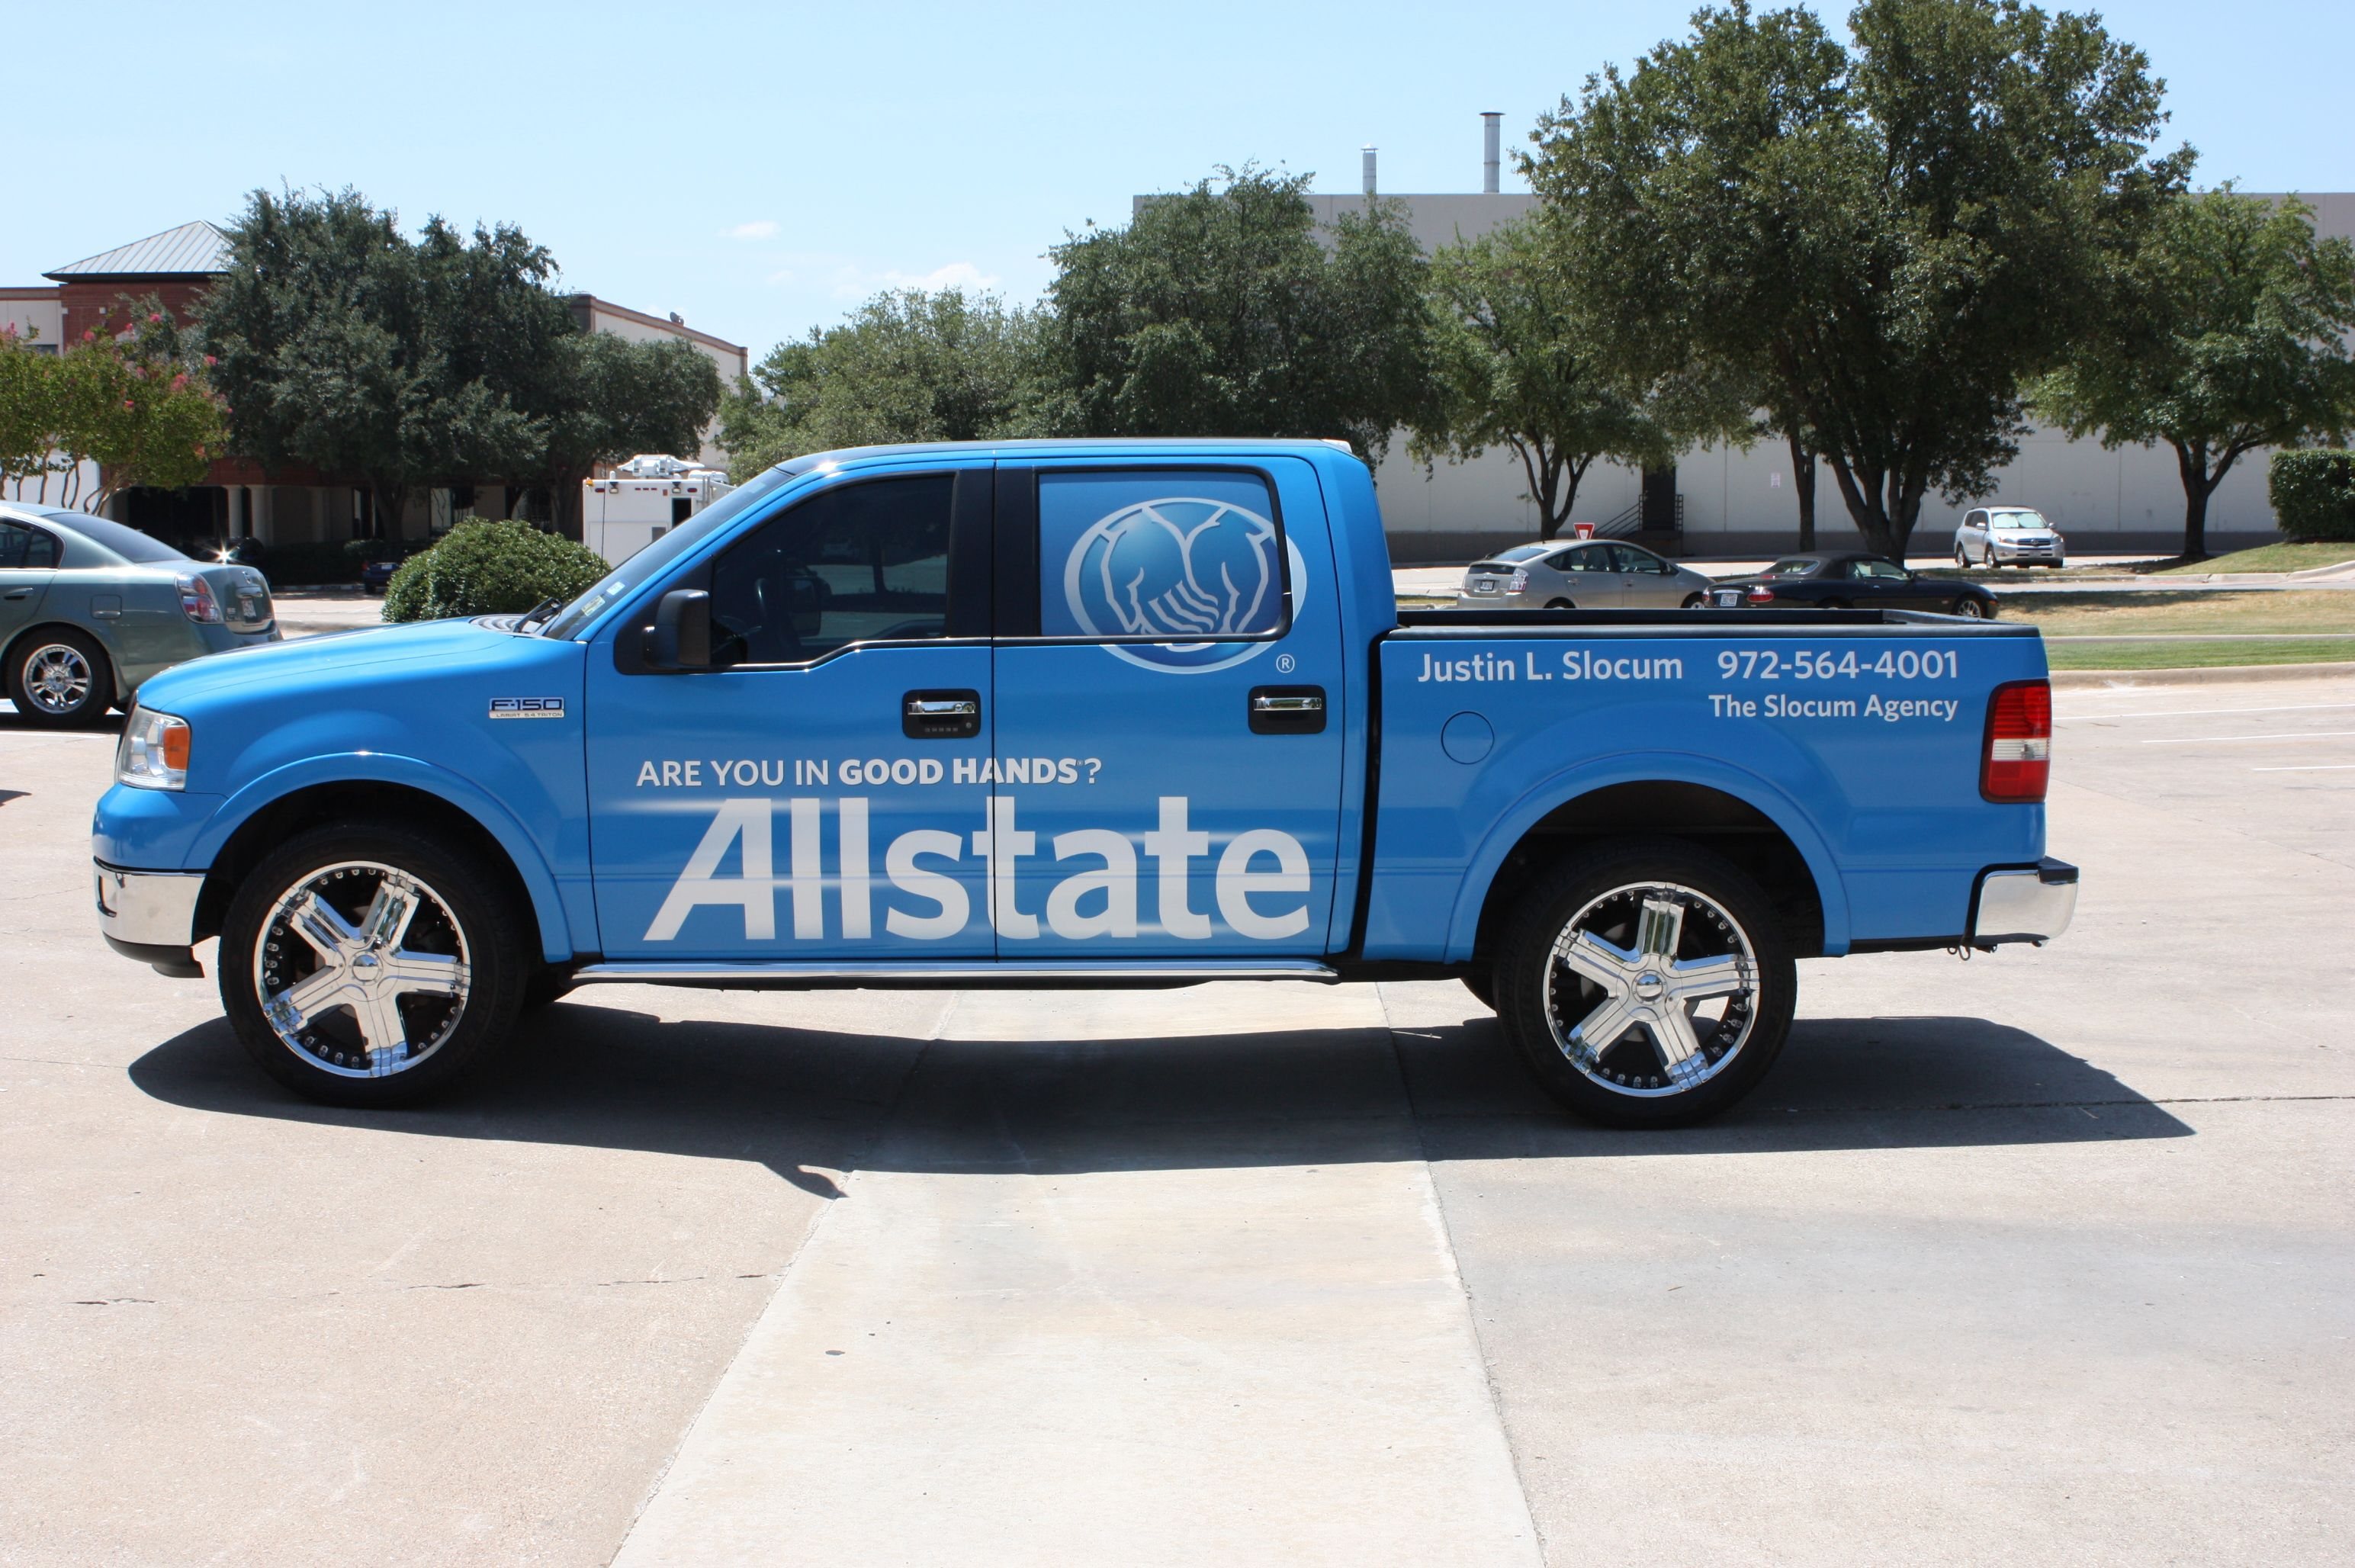 Vehicle Wraps Are A Great Way To Get Noticed Our Friends At Allstate Take Advantage Of The Advertising Everywhere They Go Www Speedp Car Wrap Slocum Vehicles